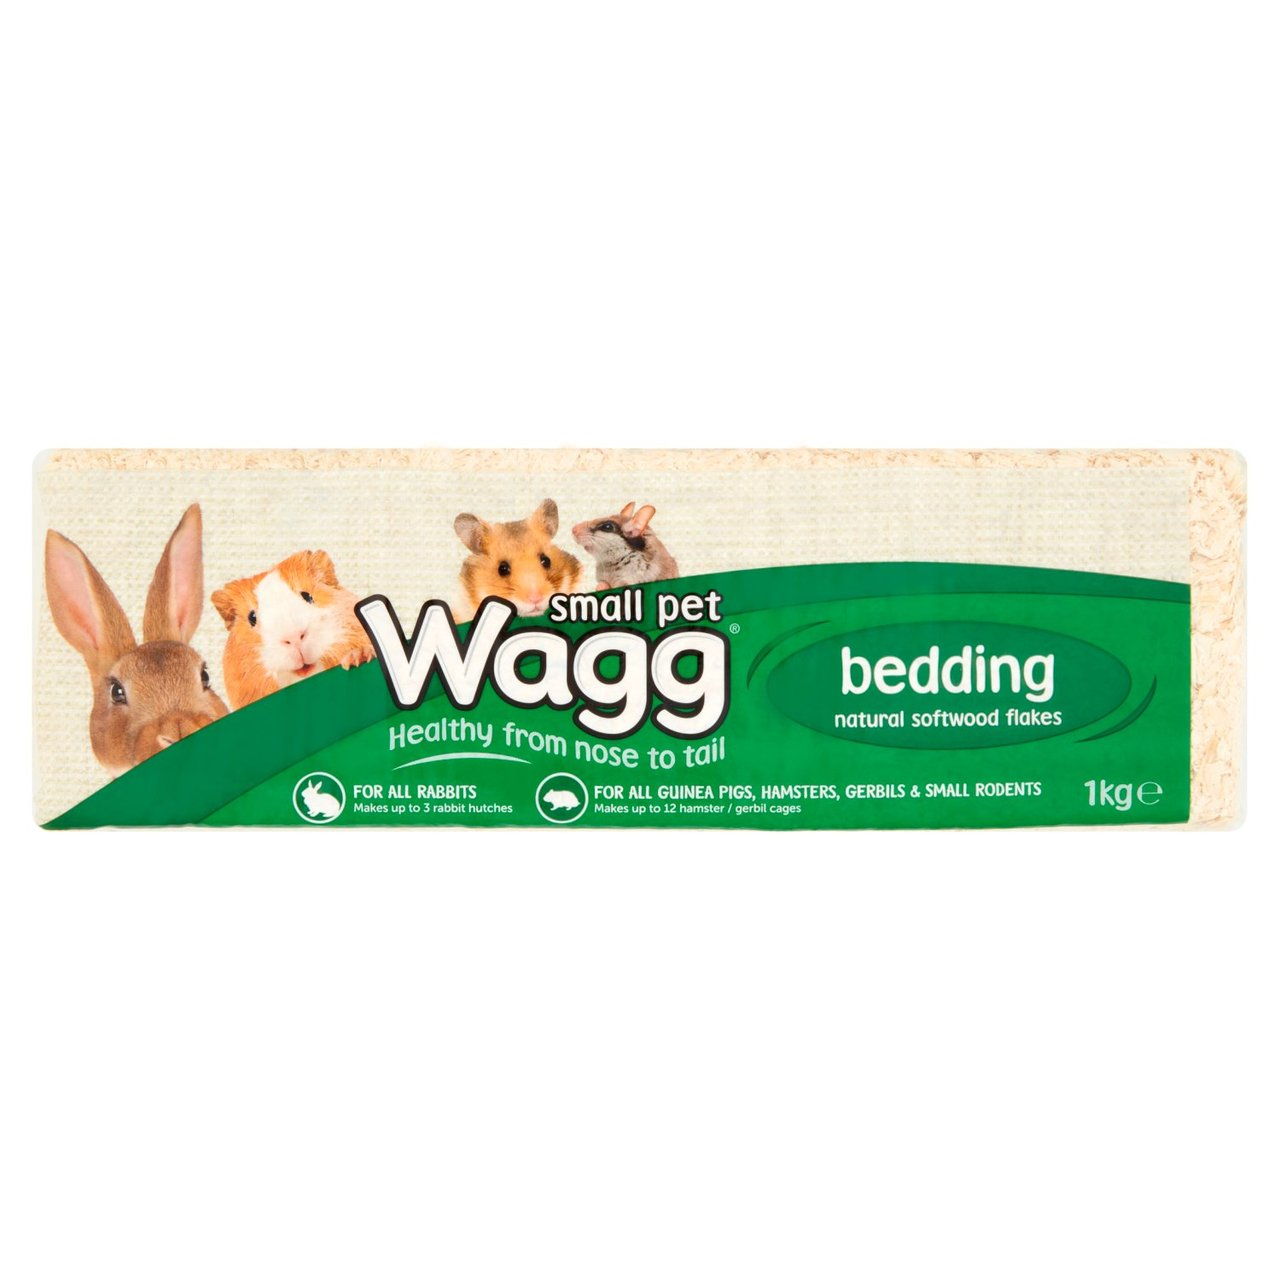 An image of Wagg Small Pets Bedding